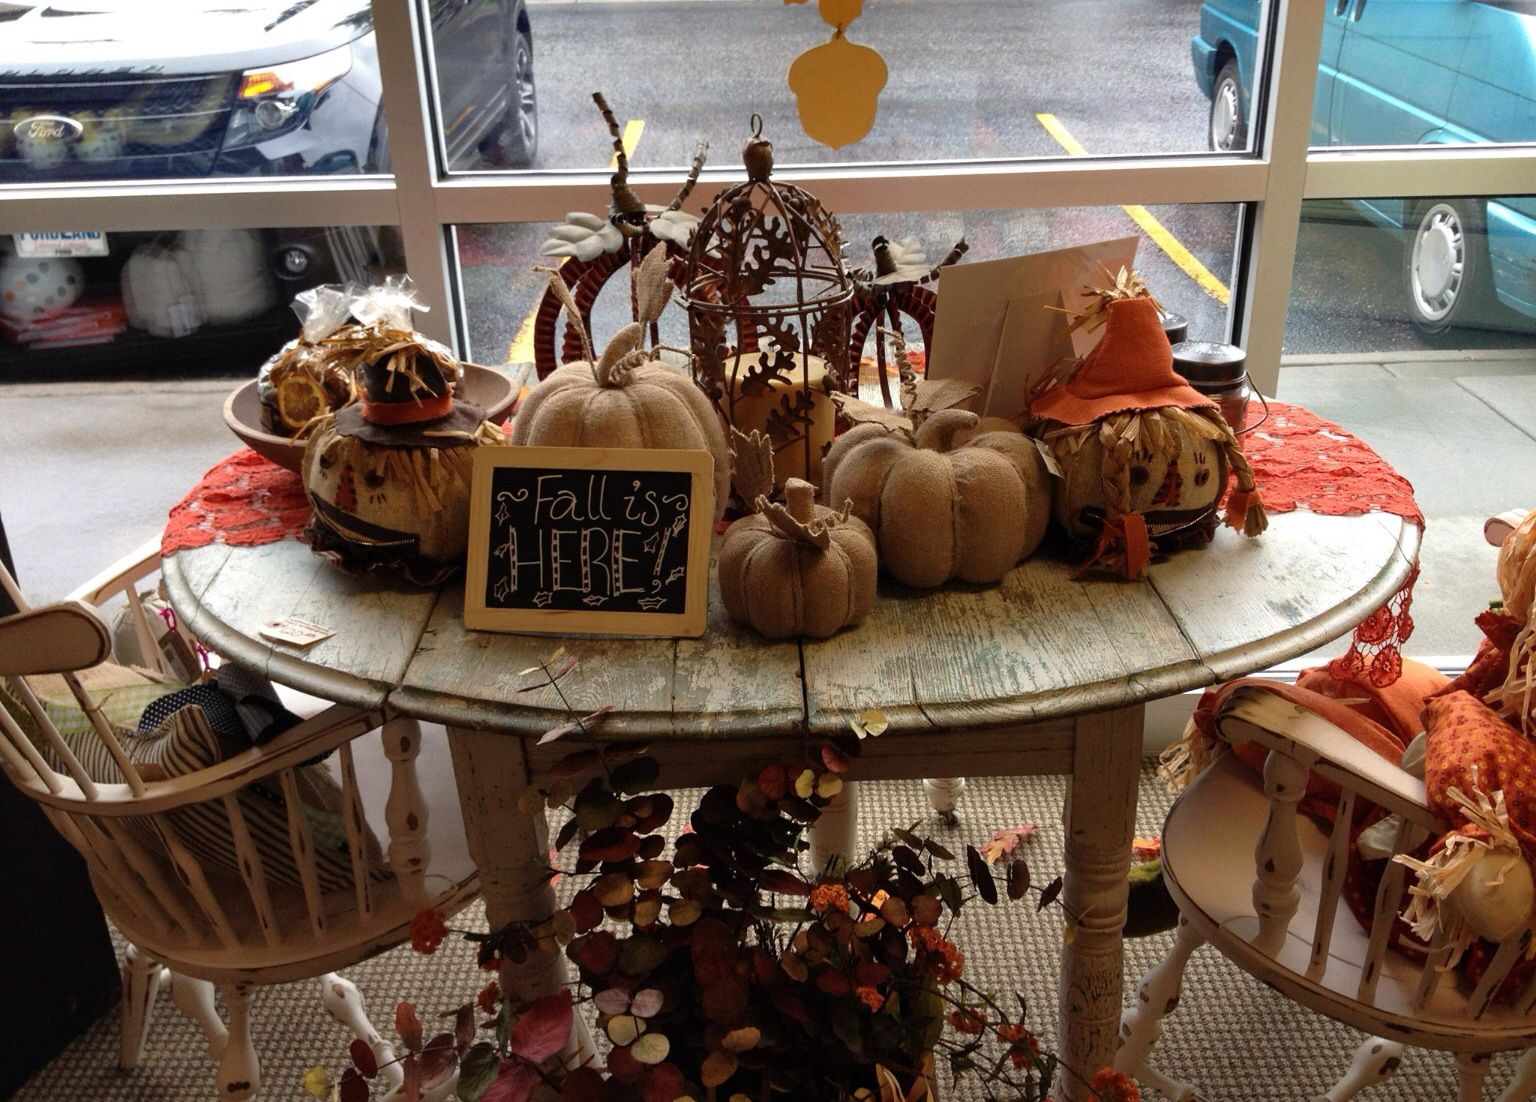 So many cute things to make your home welcoming this holiday season ...